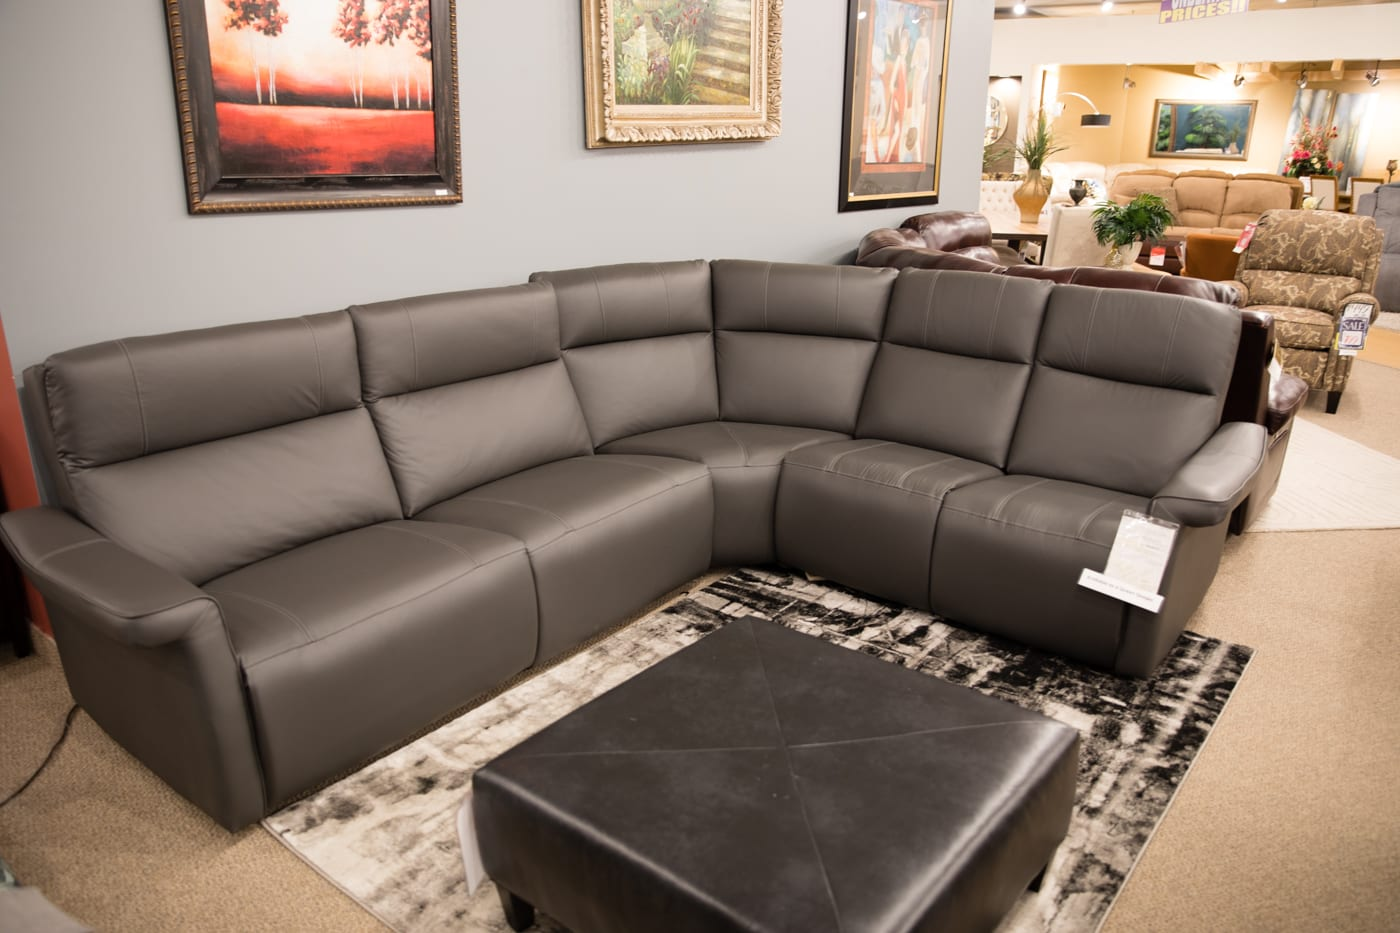 Sofa House Greece Leather Furniture Rochester Ny Sofas Couches Ottomans Greece